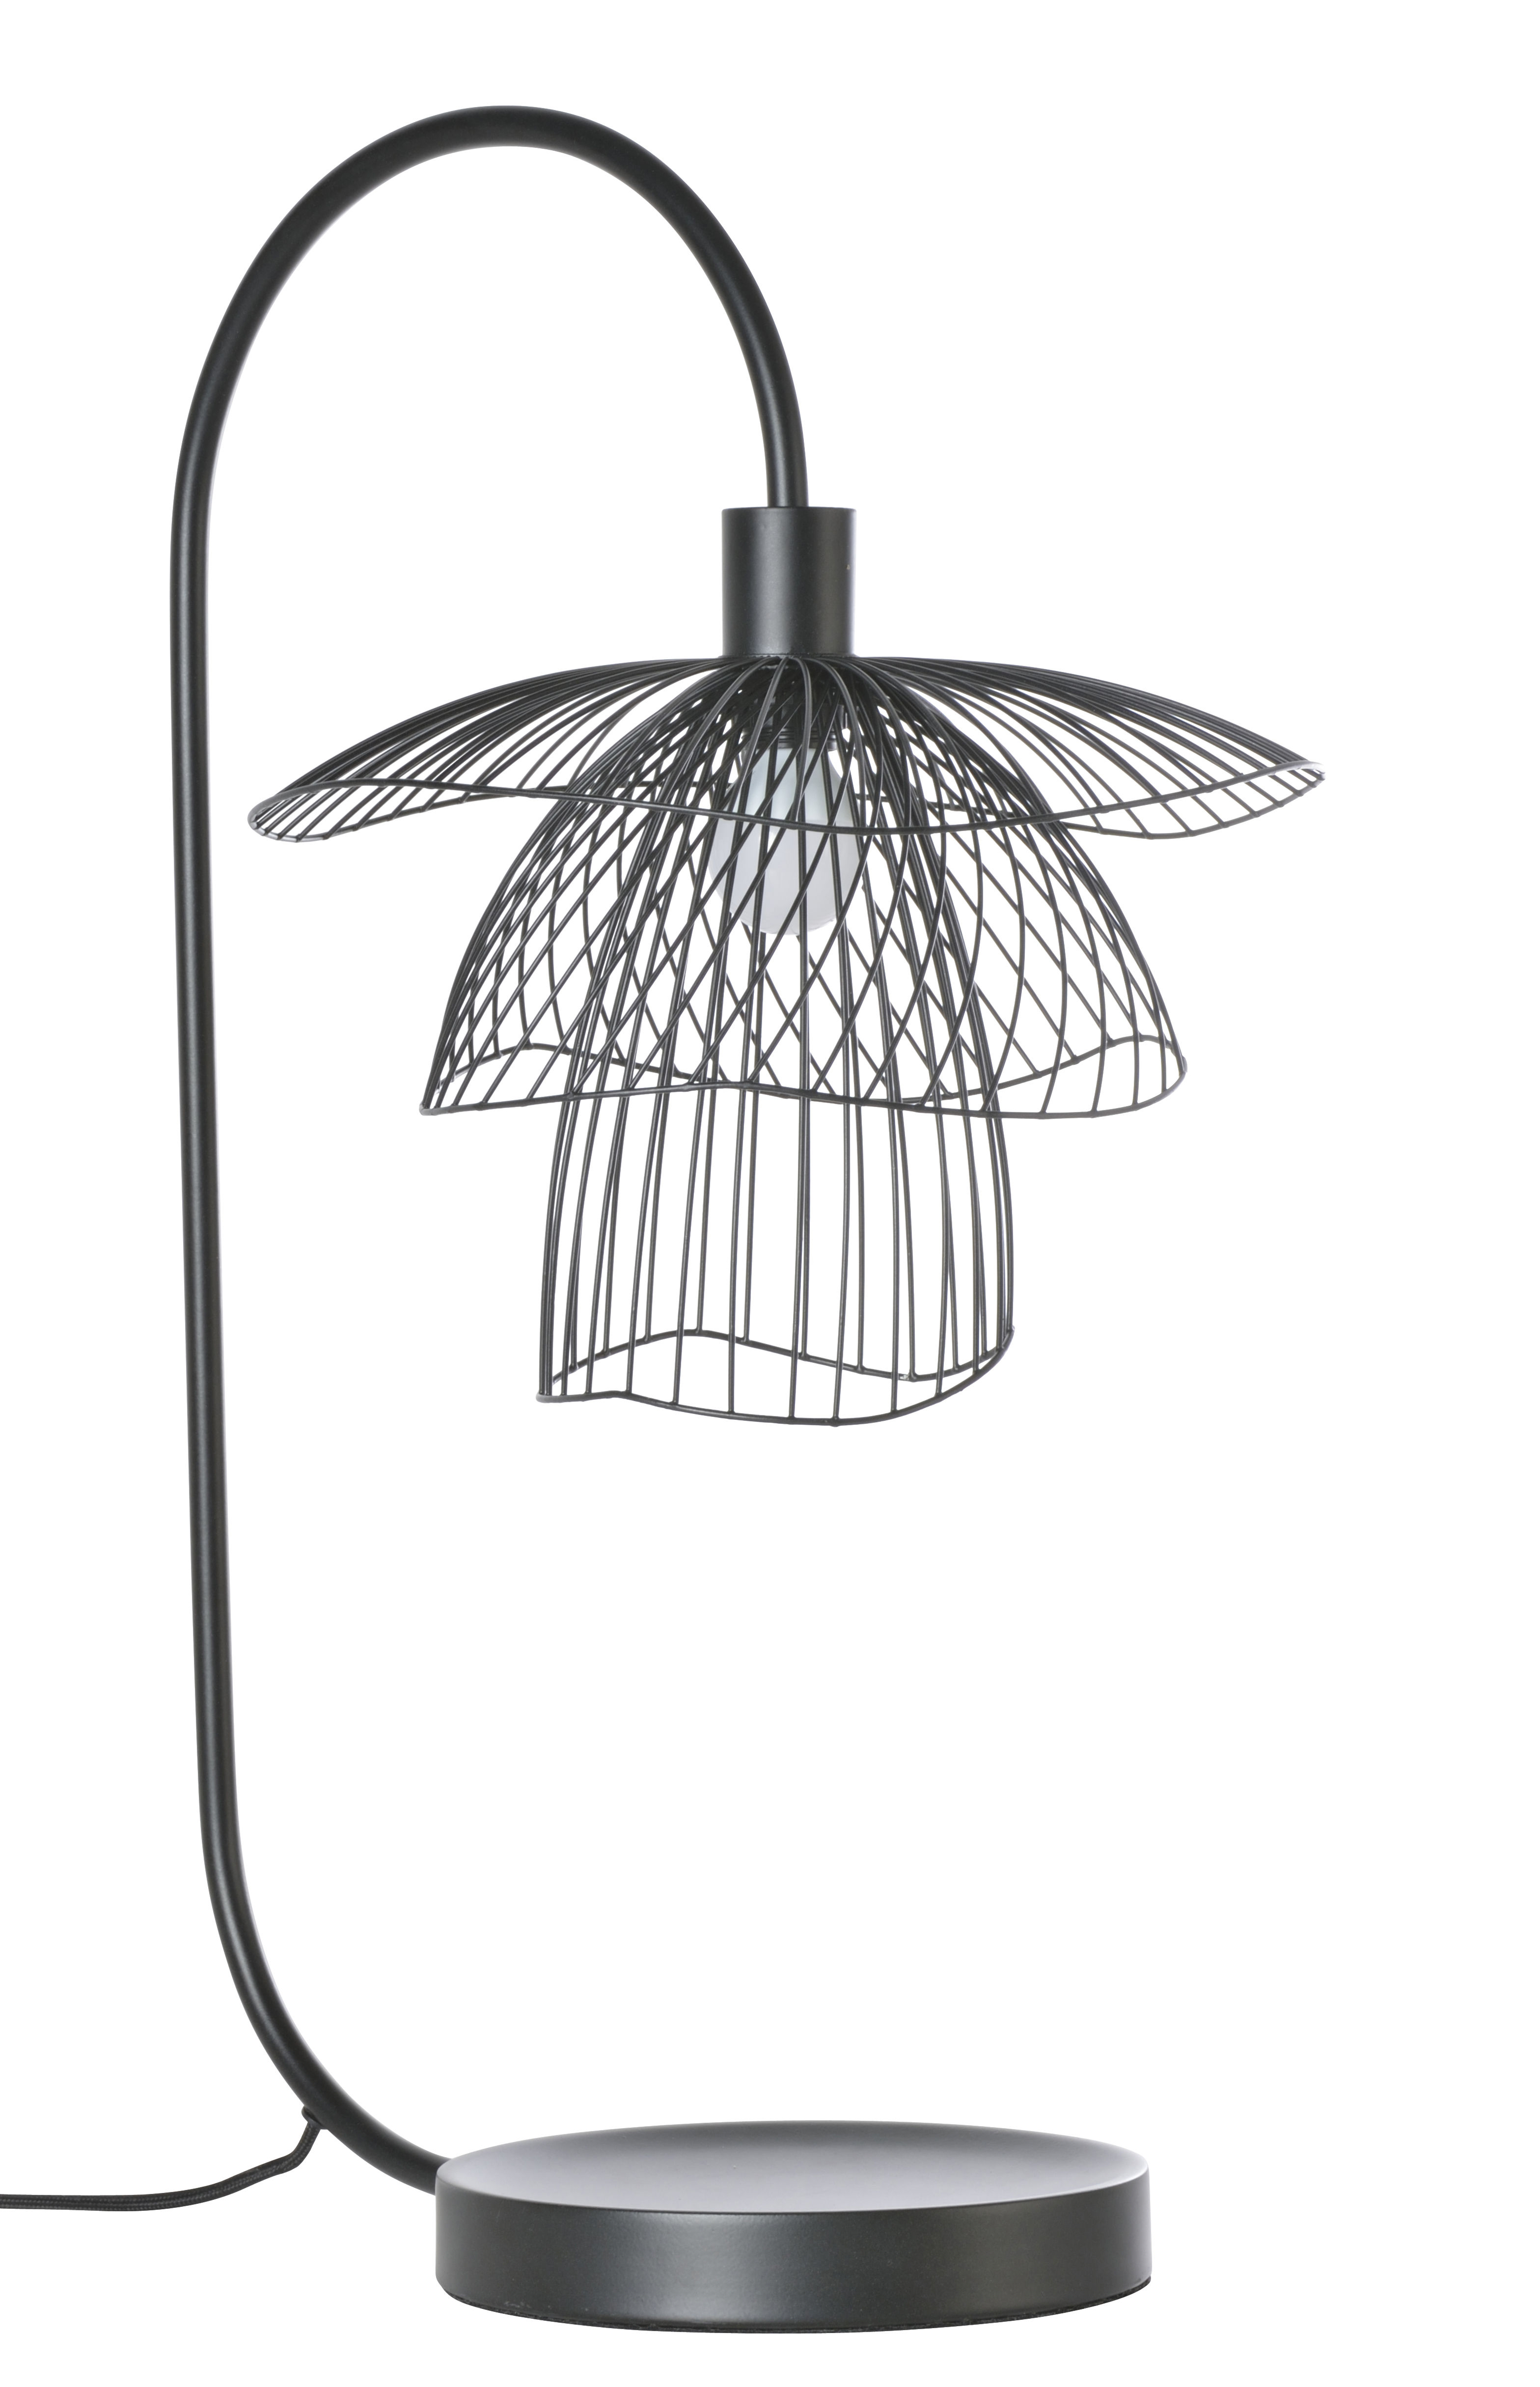 Lighting - Table Lamps - Papillon Table lamp - / H 62 cm by Forestier - Black - Powder coated steel